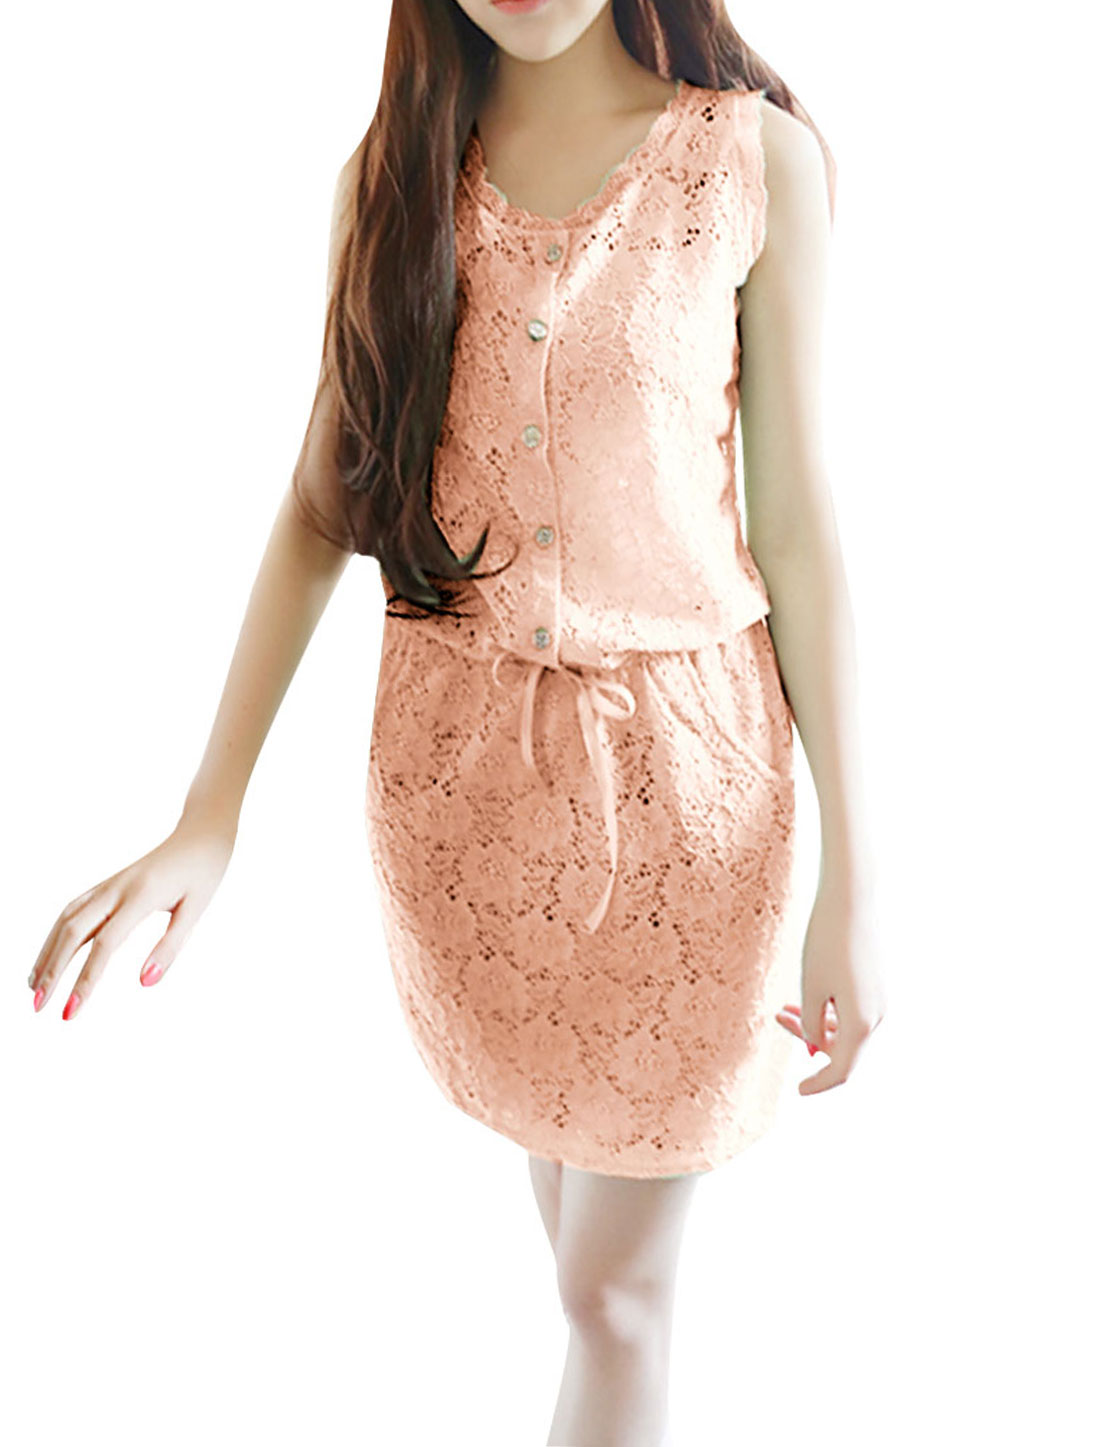 Woman Half Placket Sleeveless Crochet Drawstring Mini Dress Pink S